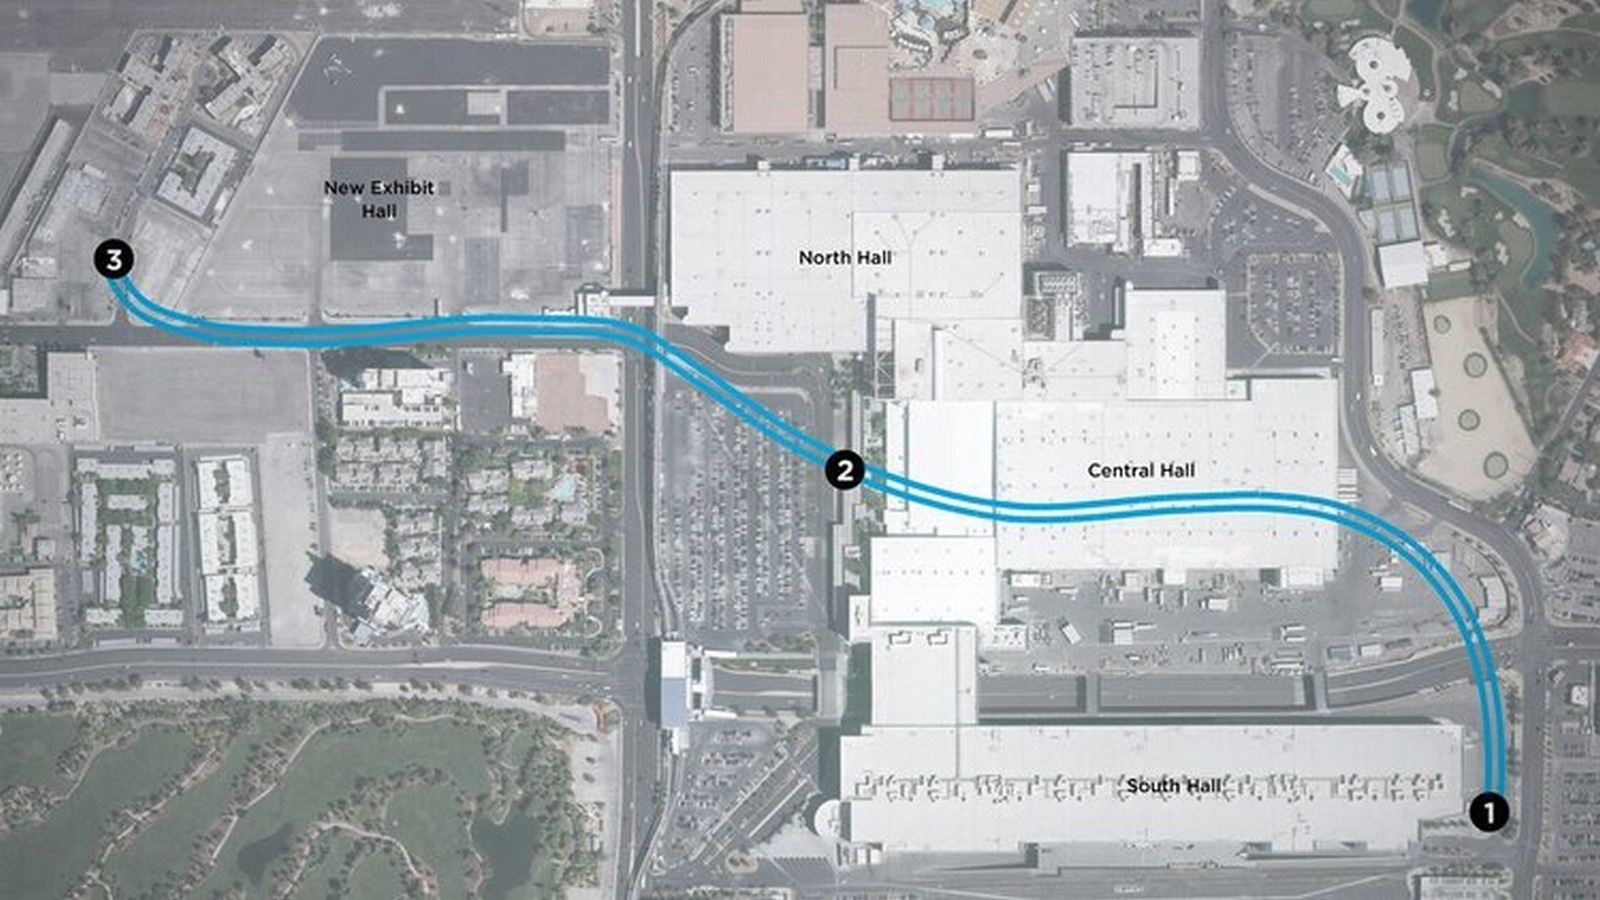 The People Mover- Las Vegas Convention Center Loop station, and its private shuttles revealed by Elon Musk - Sheet2